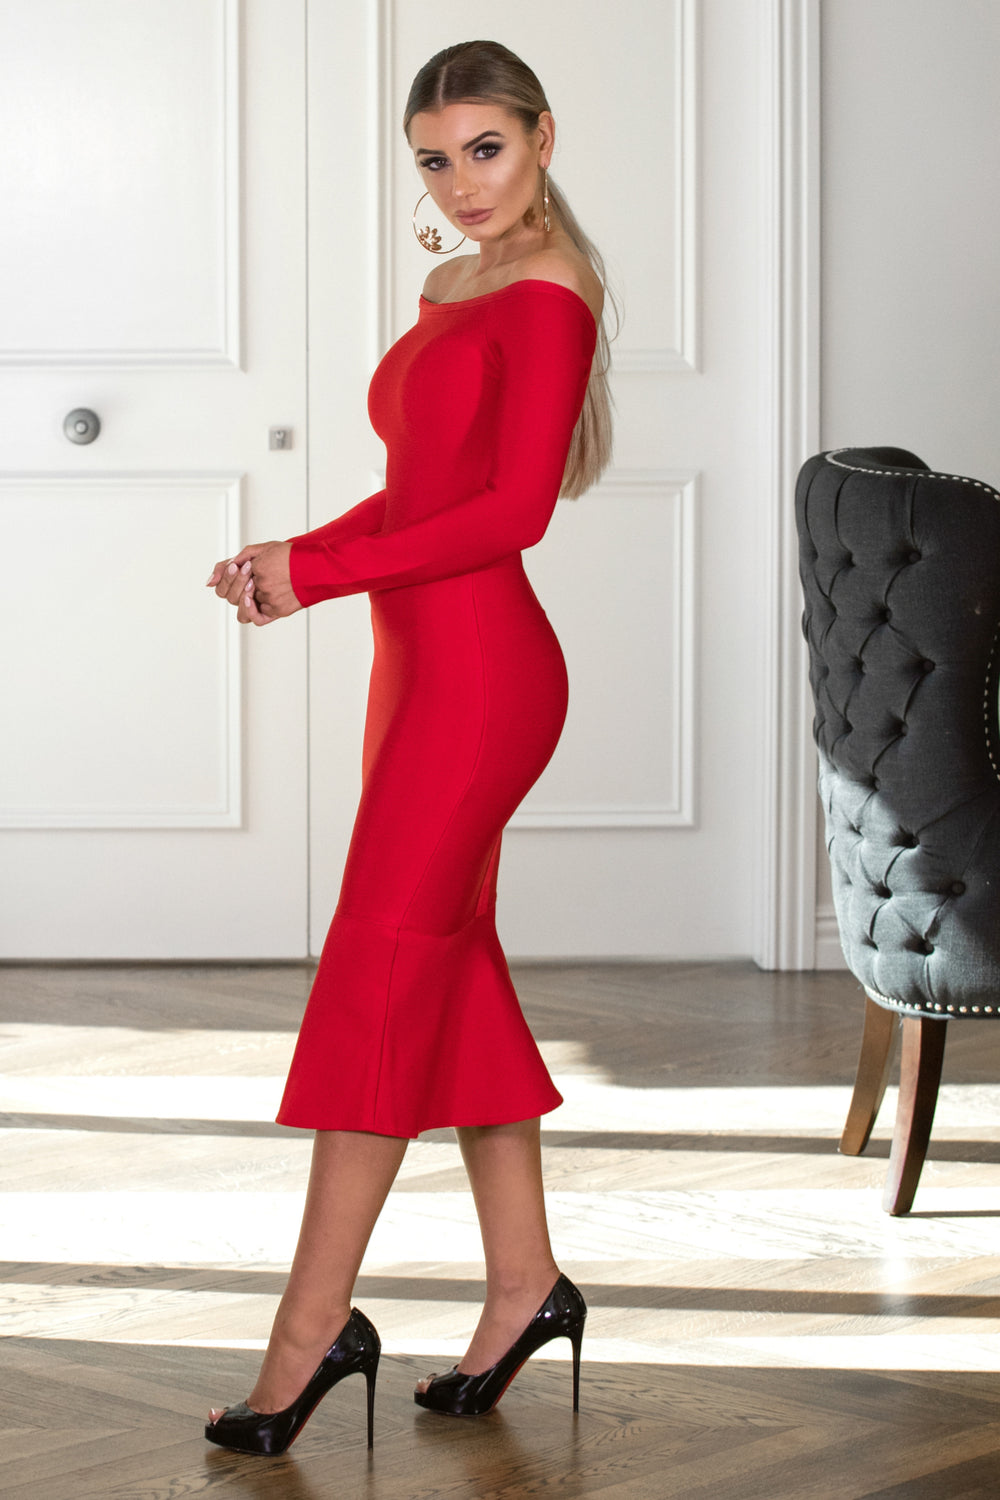 VIXEN- Red Dress | Jindigo Babe Melbourne